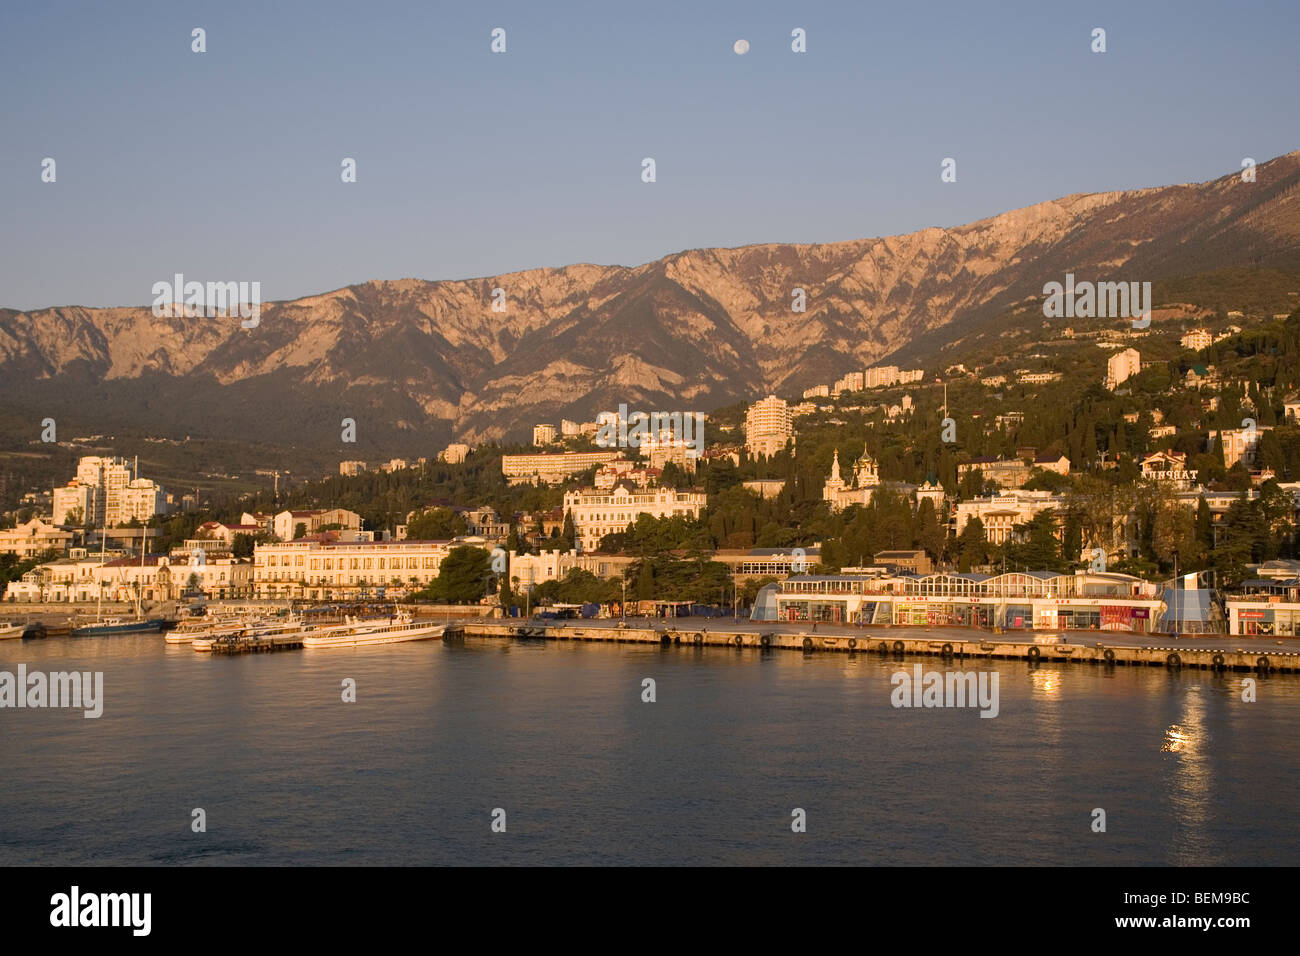 Ukraine Crimea Yalta at sunrise - Stock Image